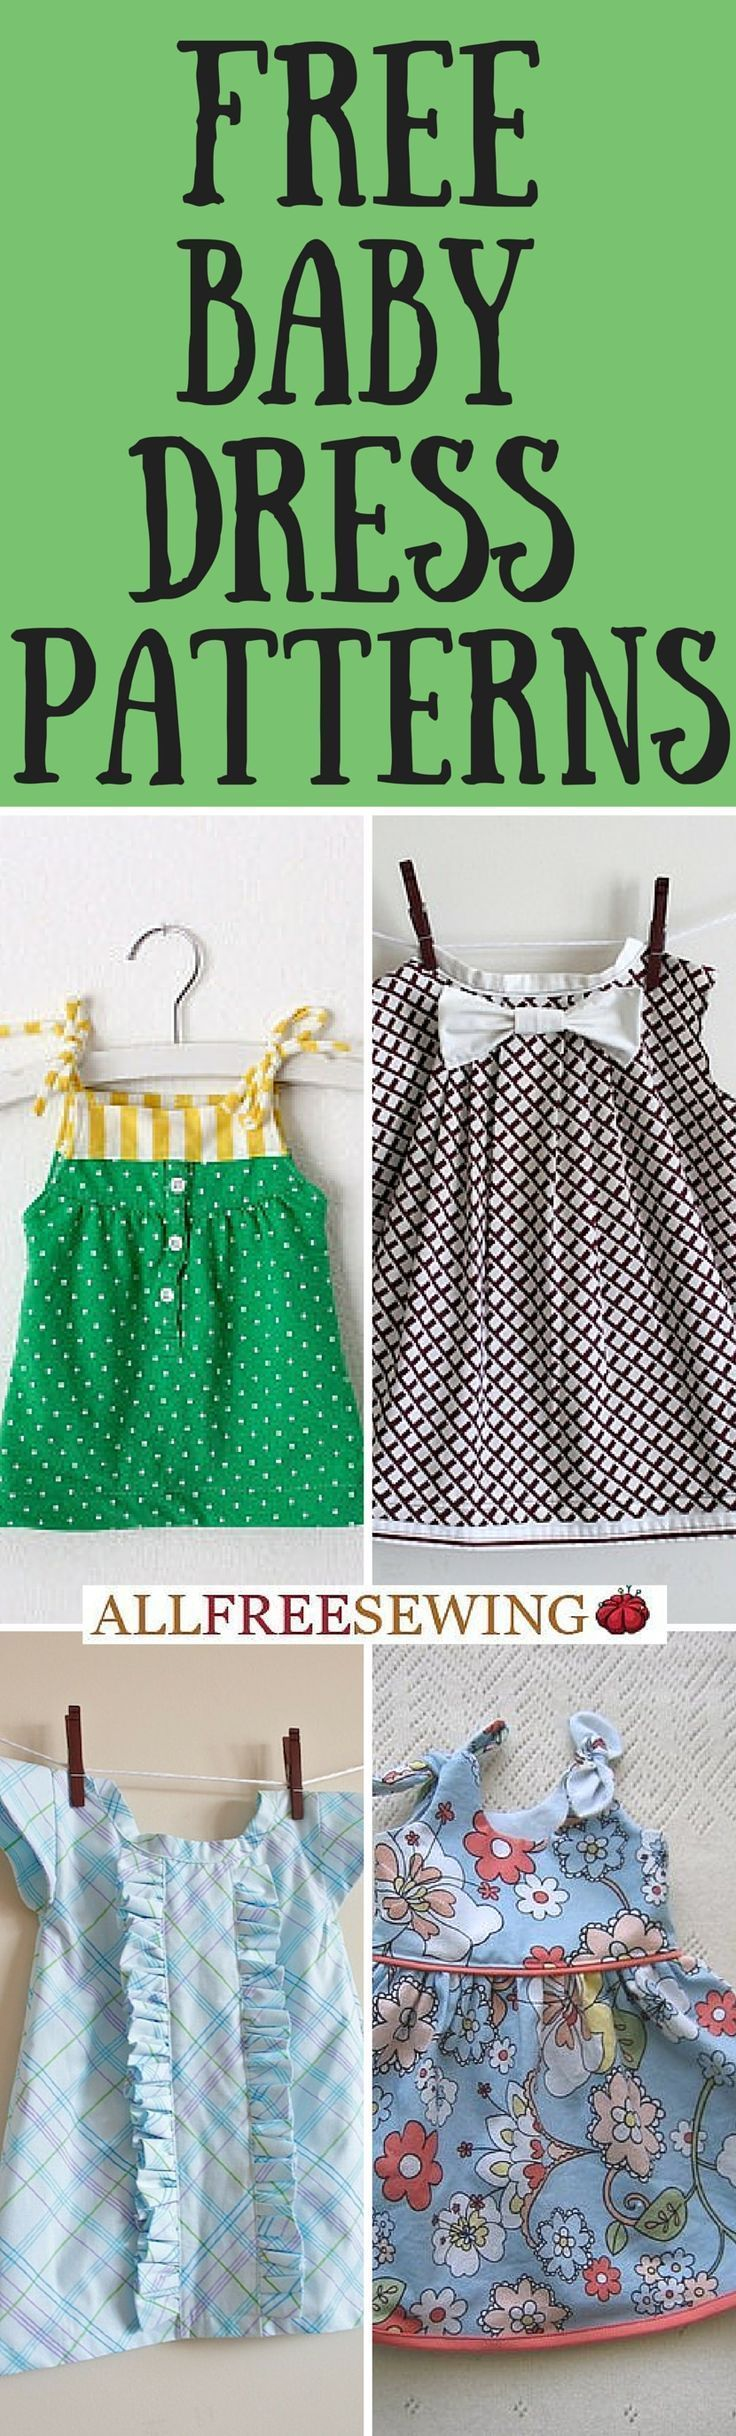 Marianna s lazy daisy days meadow sweet baby dress - Best 20 Knit Baby Dress Ideas On Pinterest Knitting Baby Girl Knitted Baby Clothes And Knit Baby Sweaters